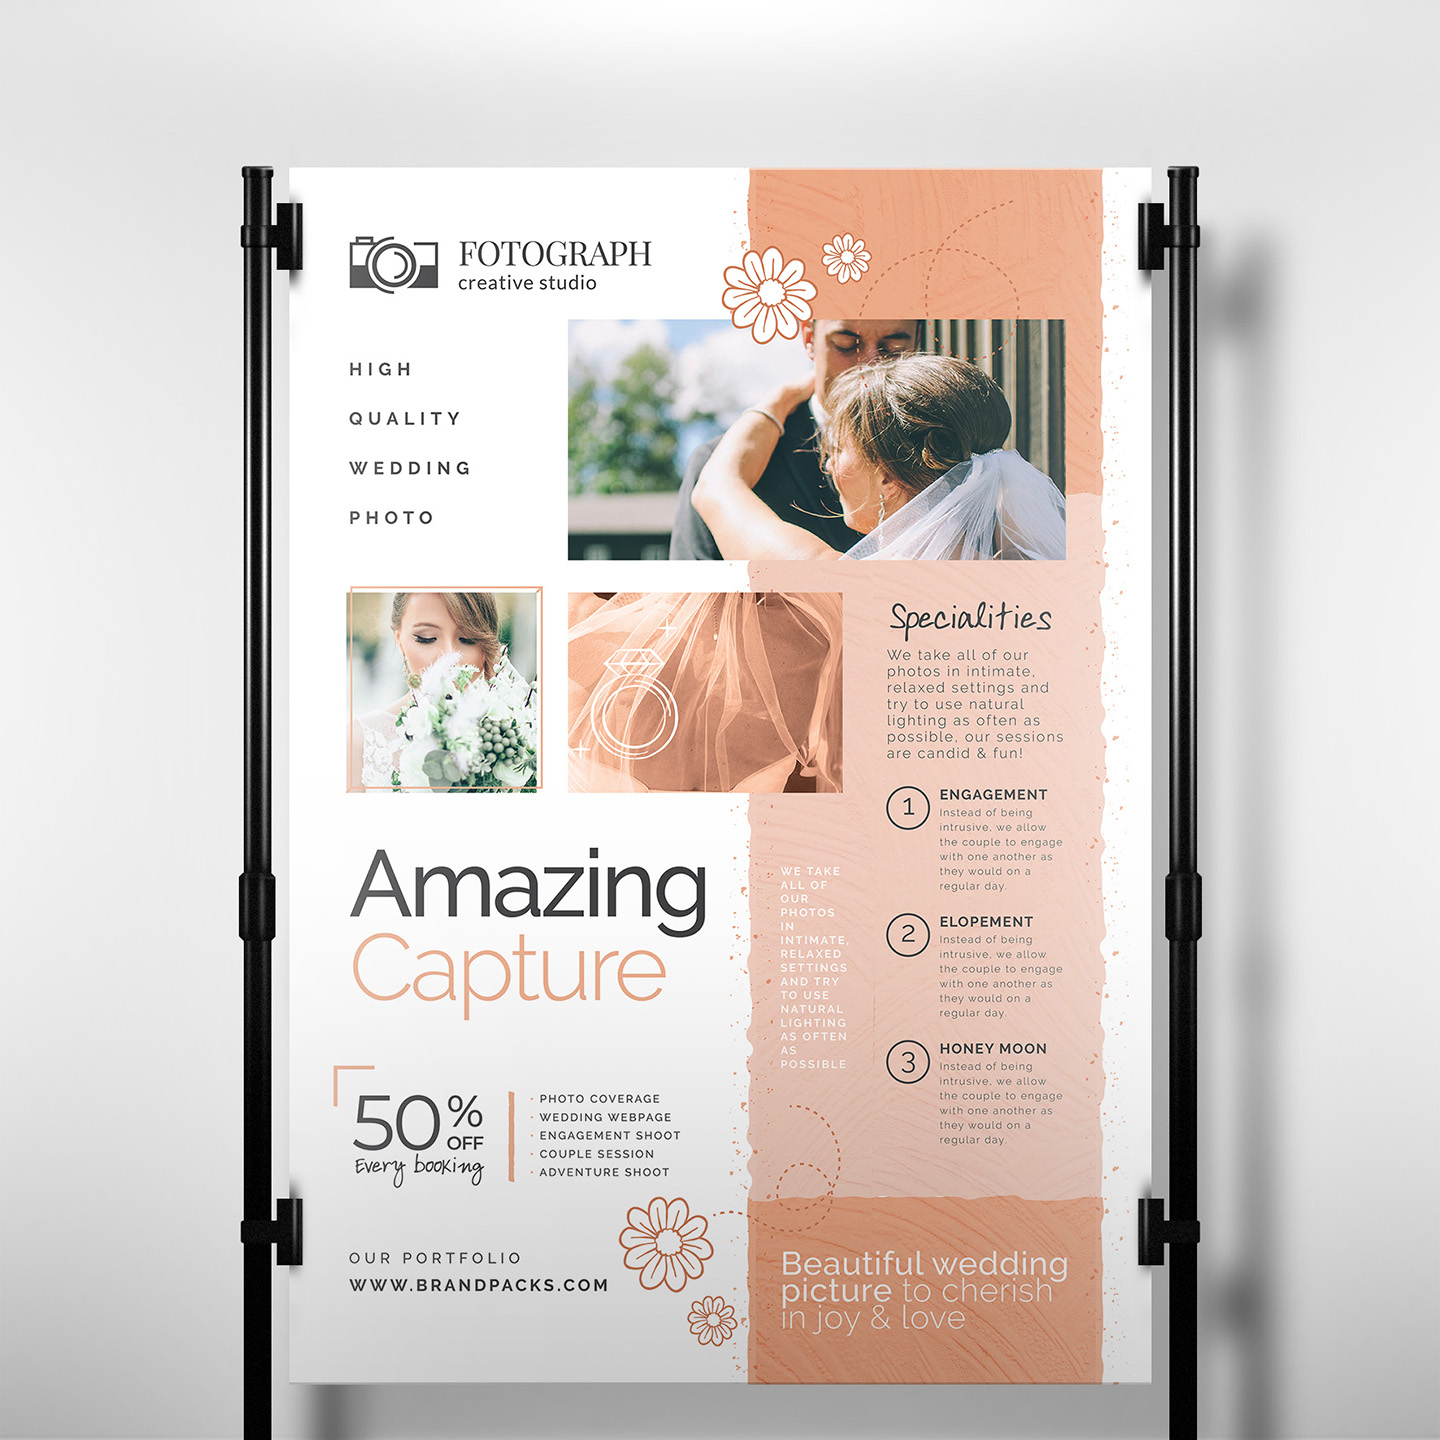 Photography Service Banner Template - Psd, Ai & Vector Inside Photography Banner Template